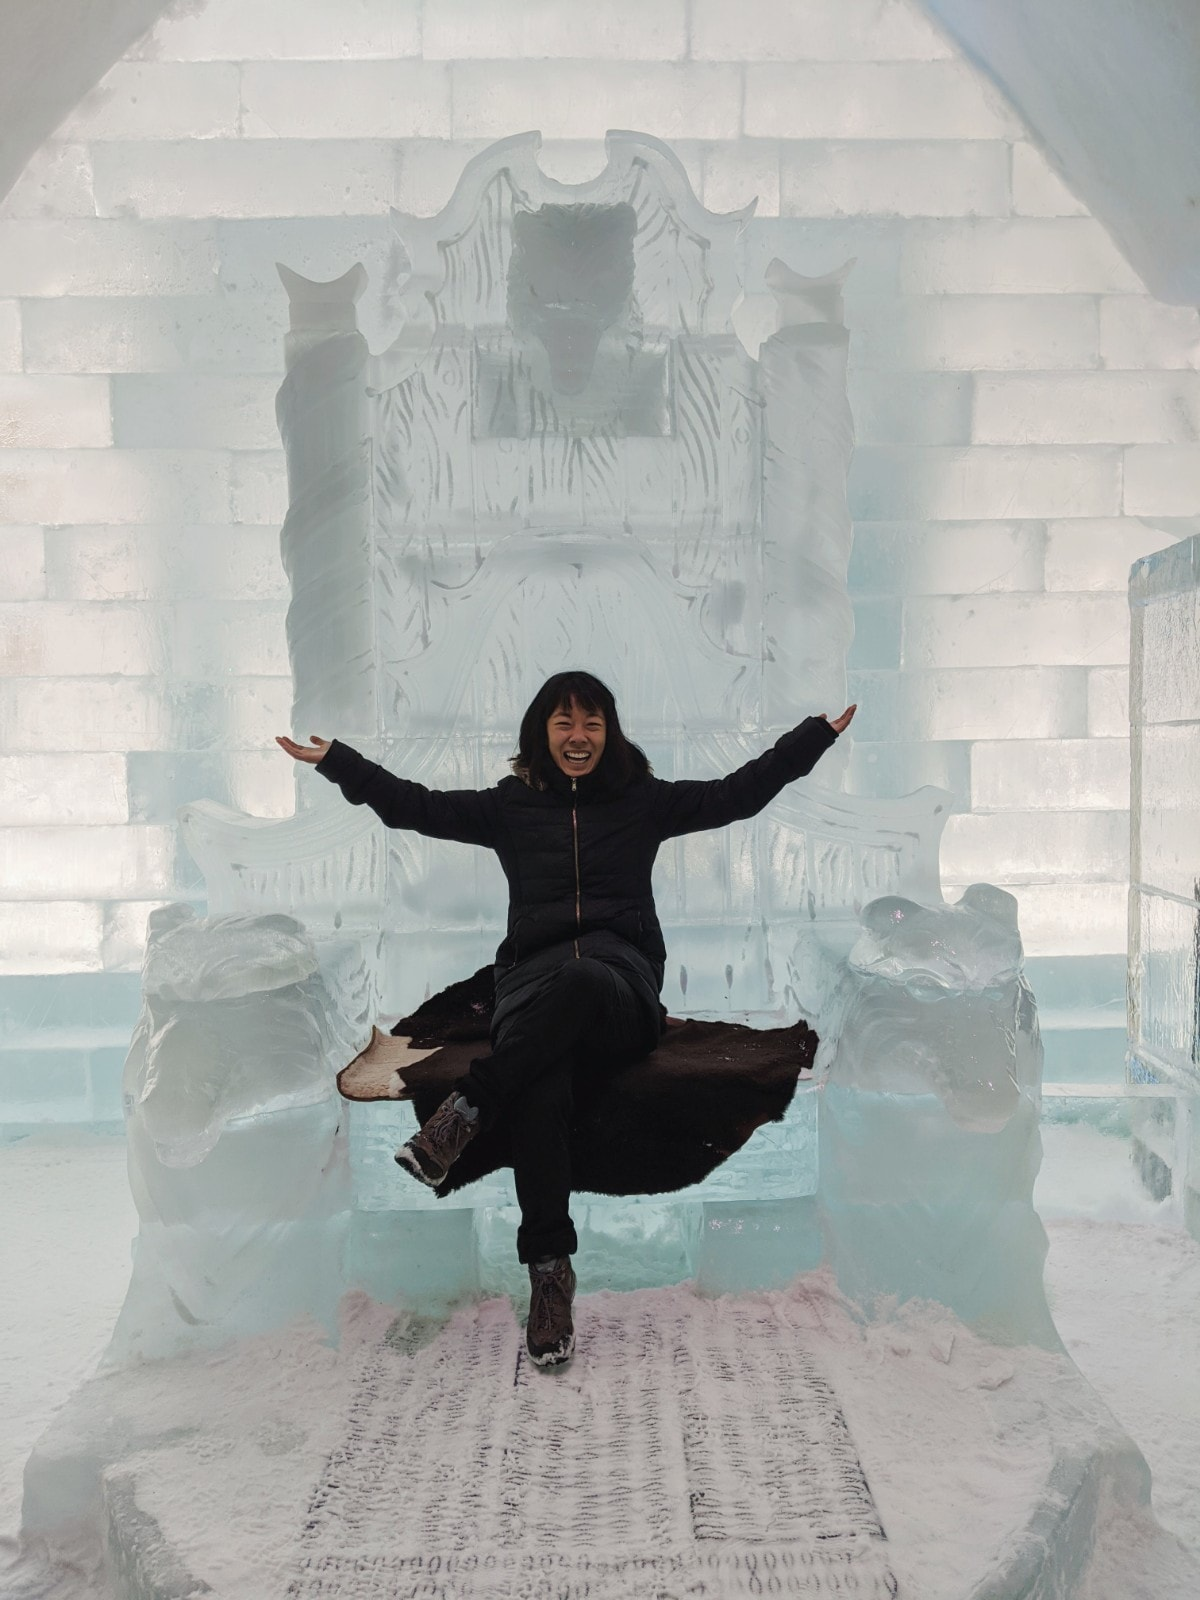 Me sitting on an ice throne